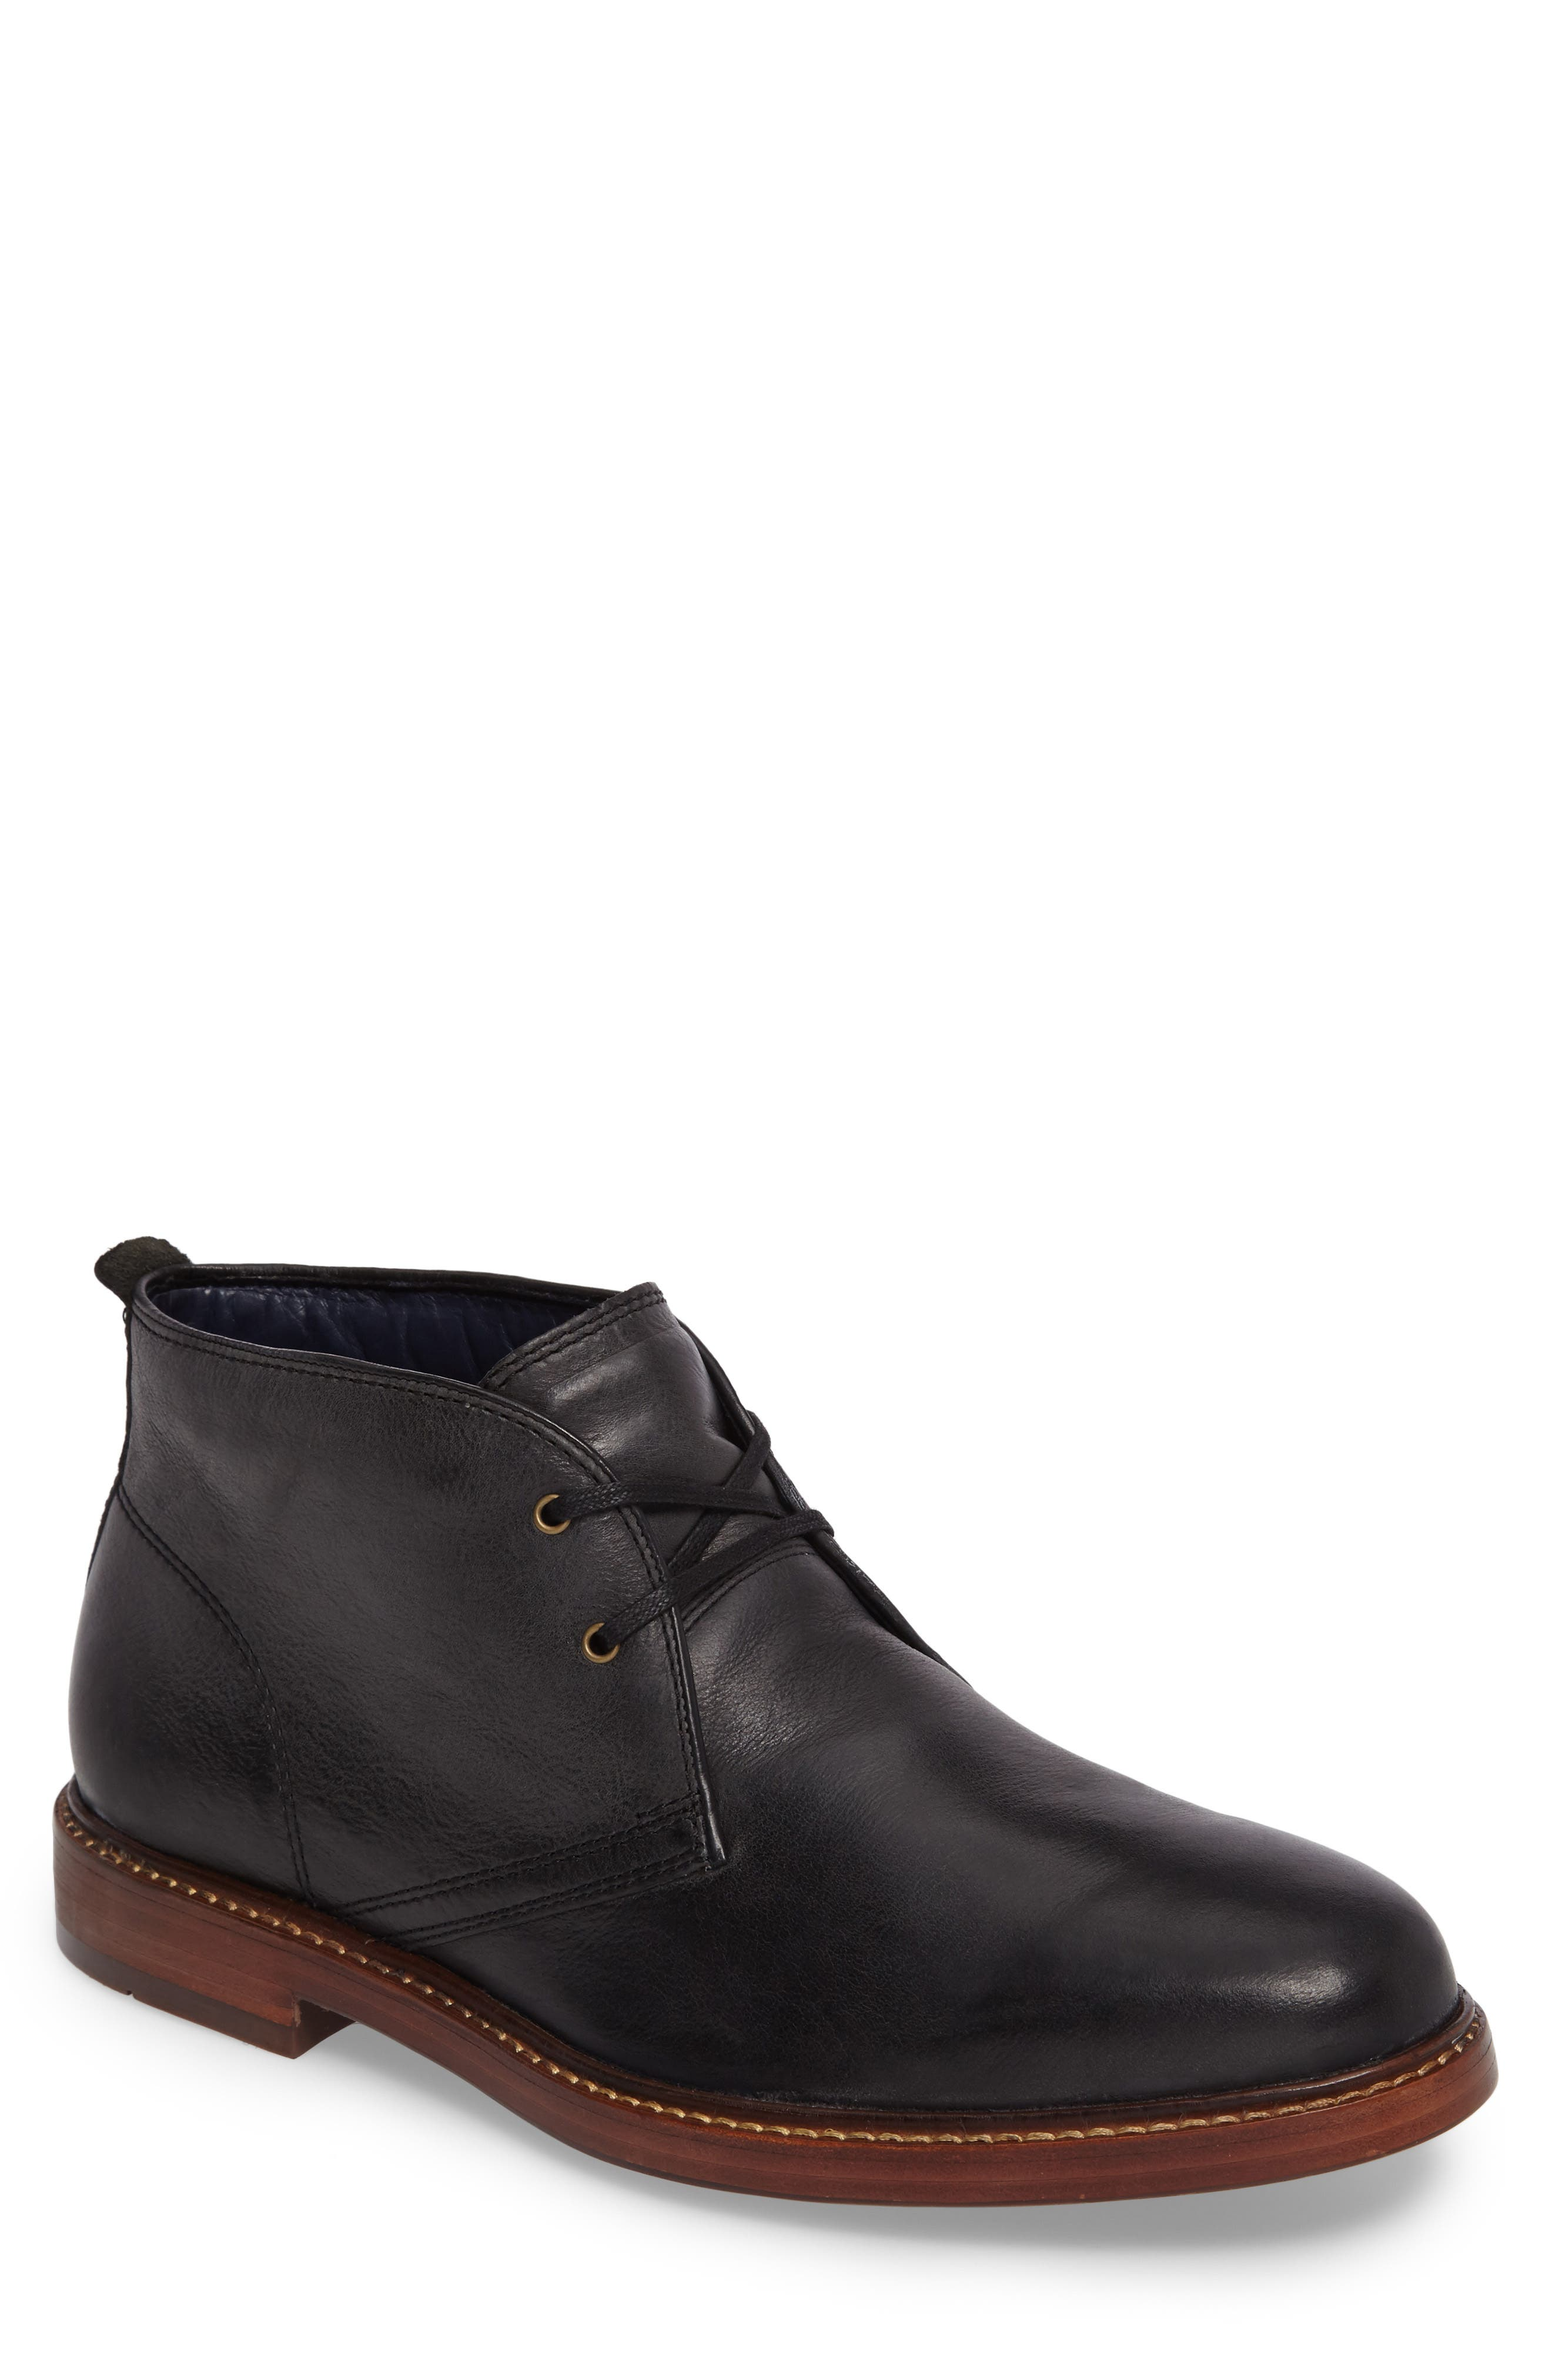 Main Image - Cole Haan Tyler Chukka Boot (Men)